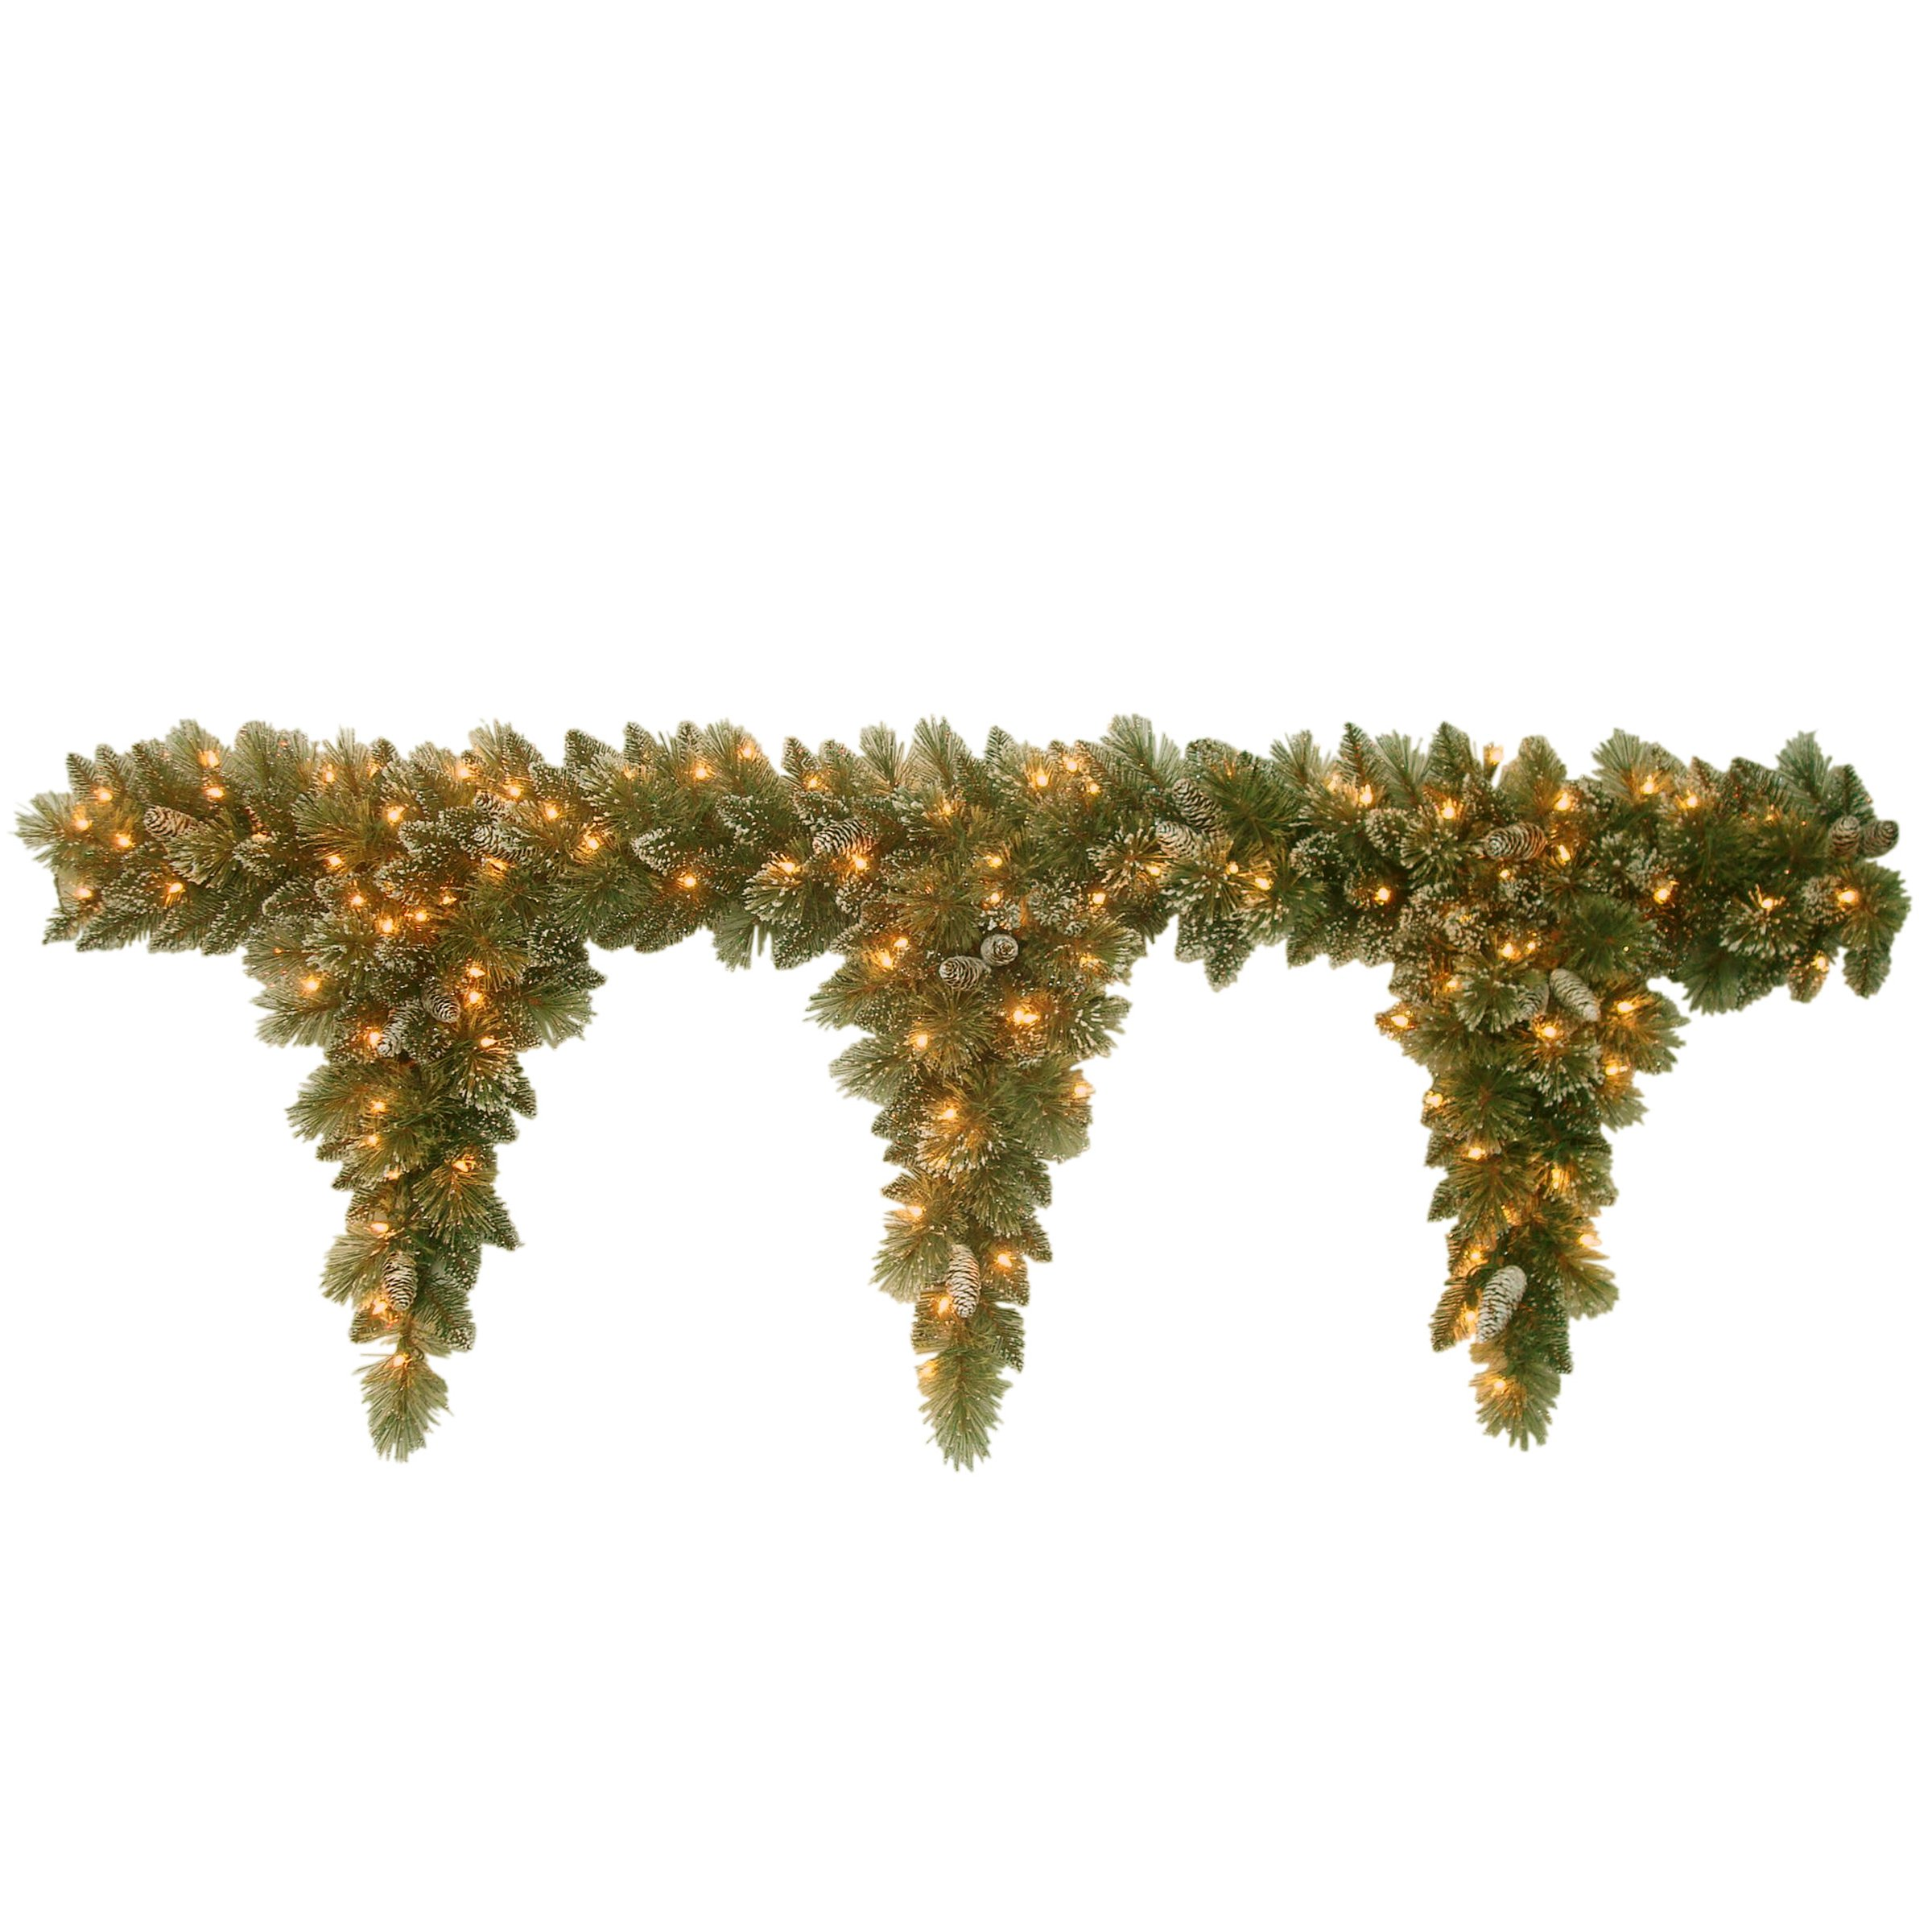 National Tree 6 Foot Glittery Bristle Pine Teardrop Garland with 3 Drops, Cones and 50 Clear Lights (GB1-300-6T-1) by National Tree Company